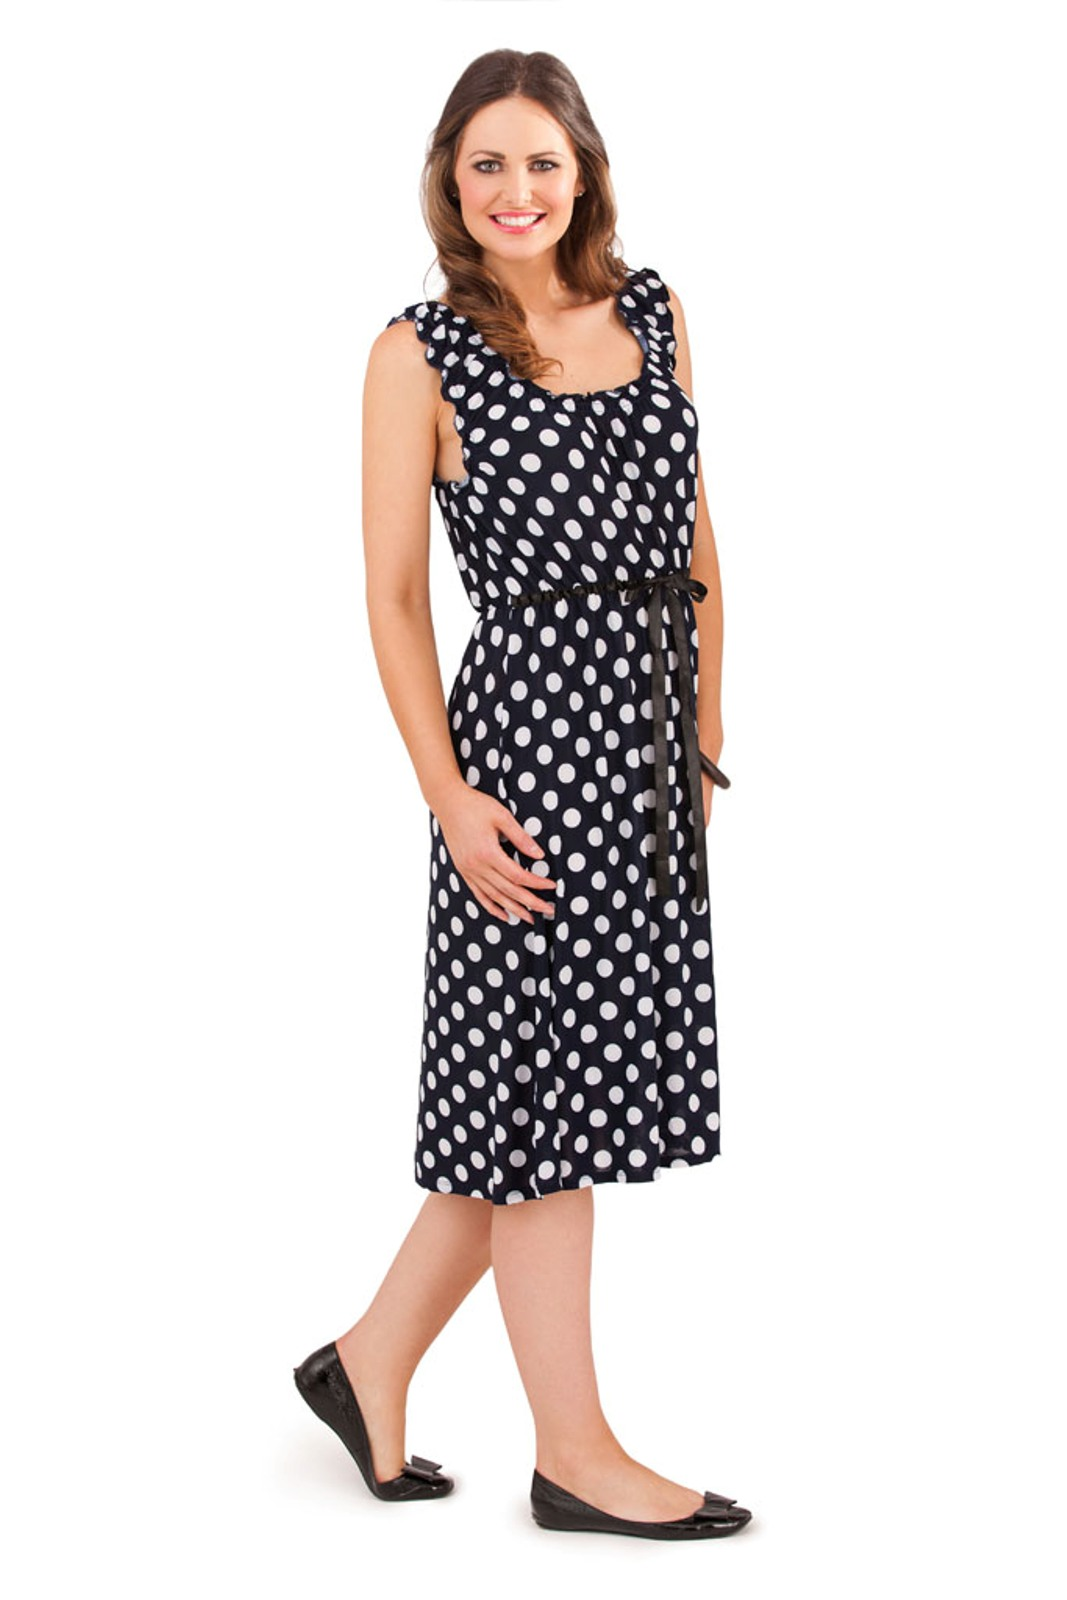 4b941834abe Womens Polka Dot Mid Knee Length Summer Dress Spot Design Ladies Size UK 8  - 16